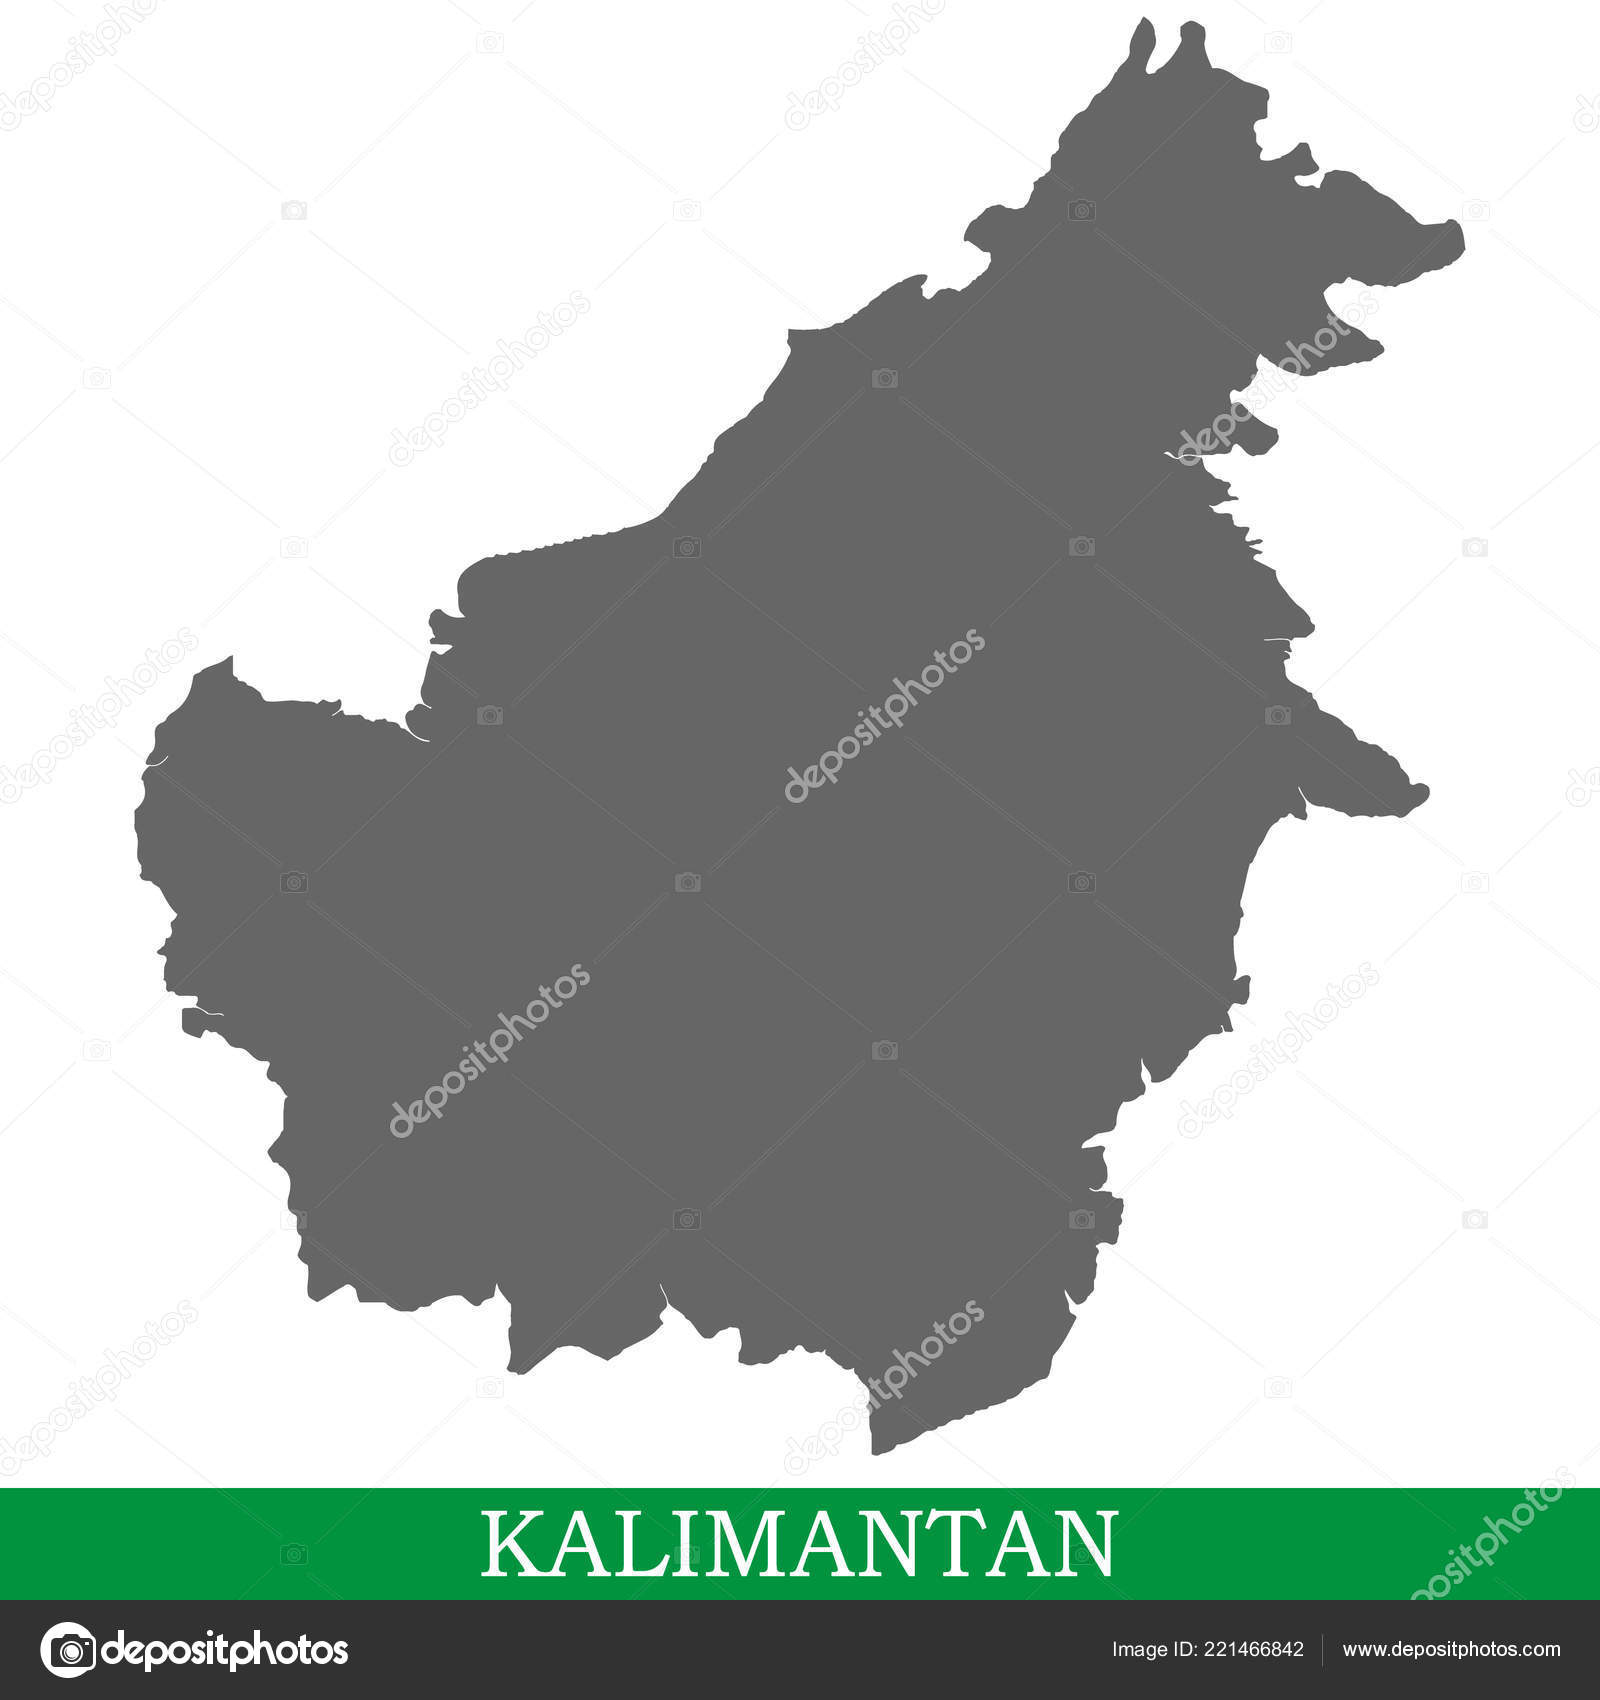 Image of: High Quality Map Kalimantan Borneo Island Indonesia Malaysia Brunei Stock Vector C Grebeshkovmaxim Gmail Com 221466842